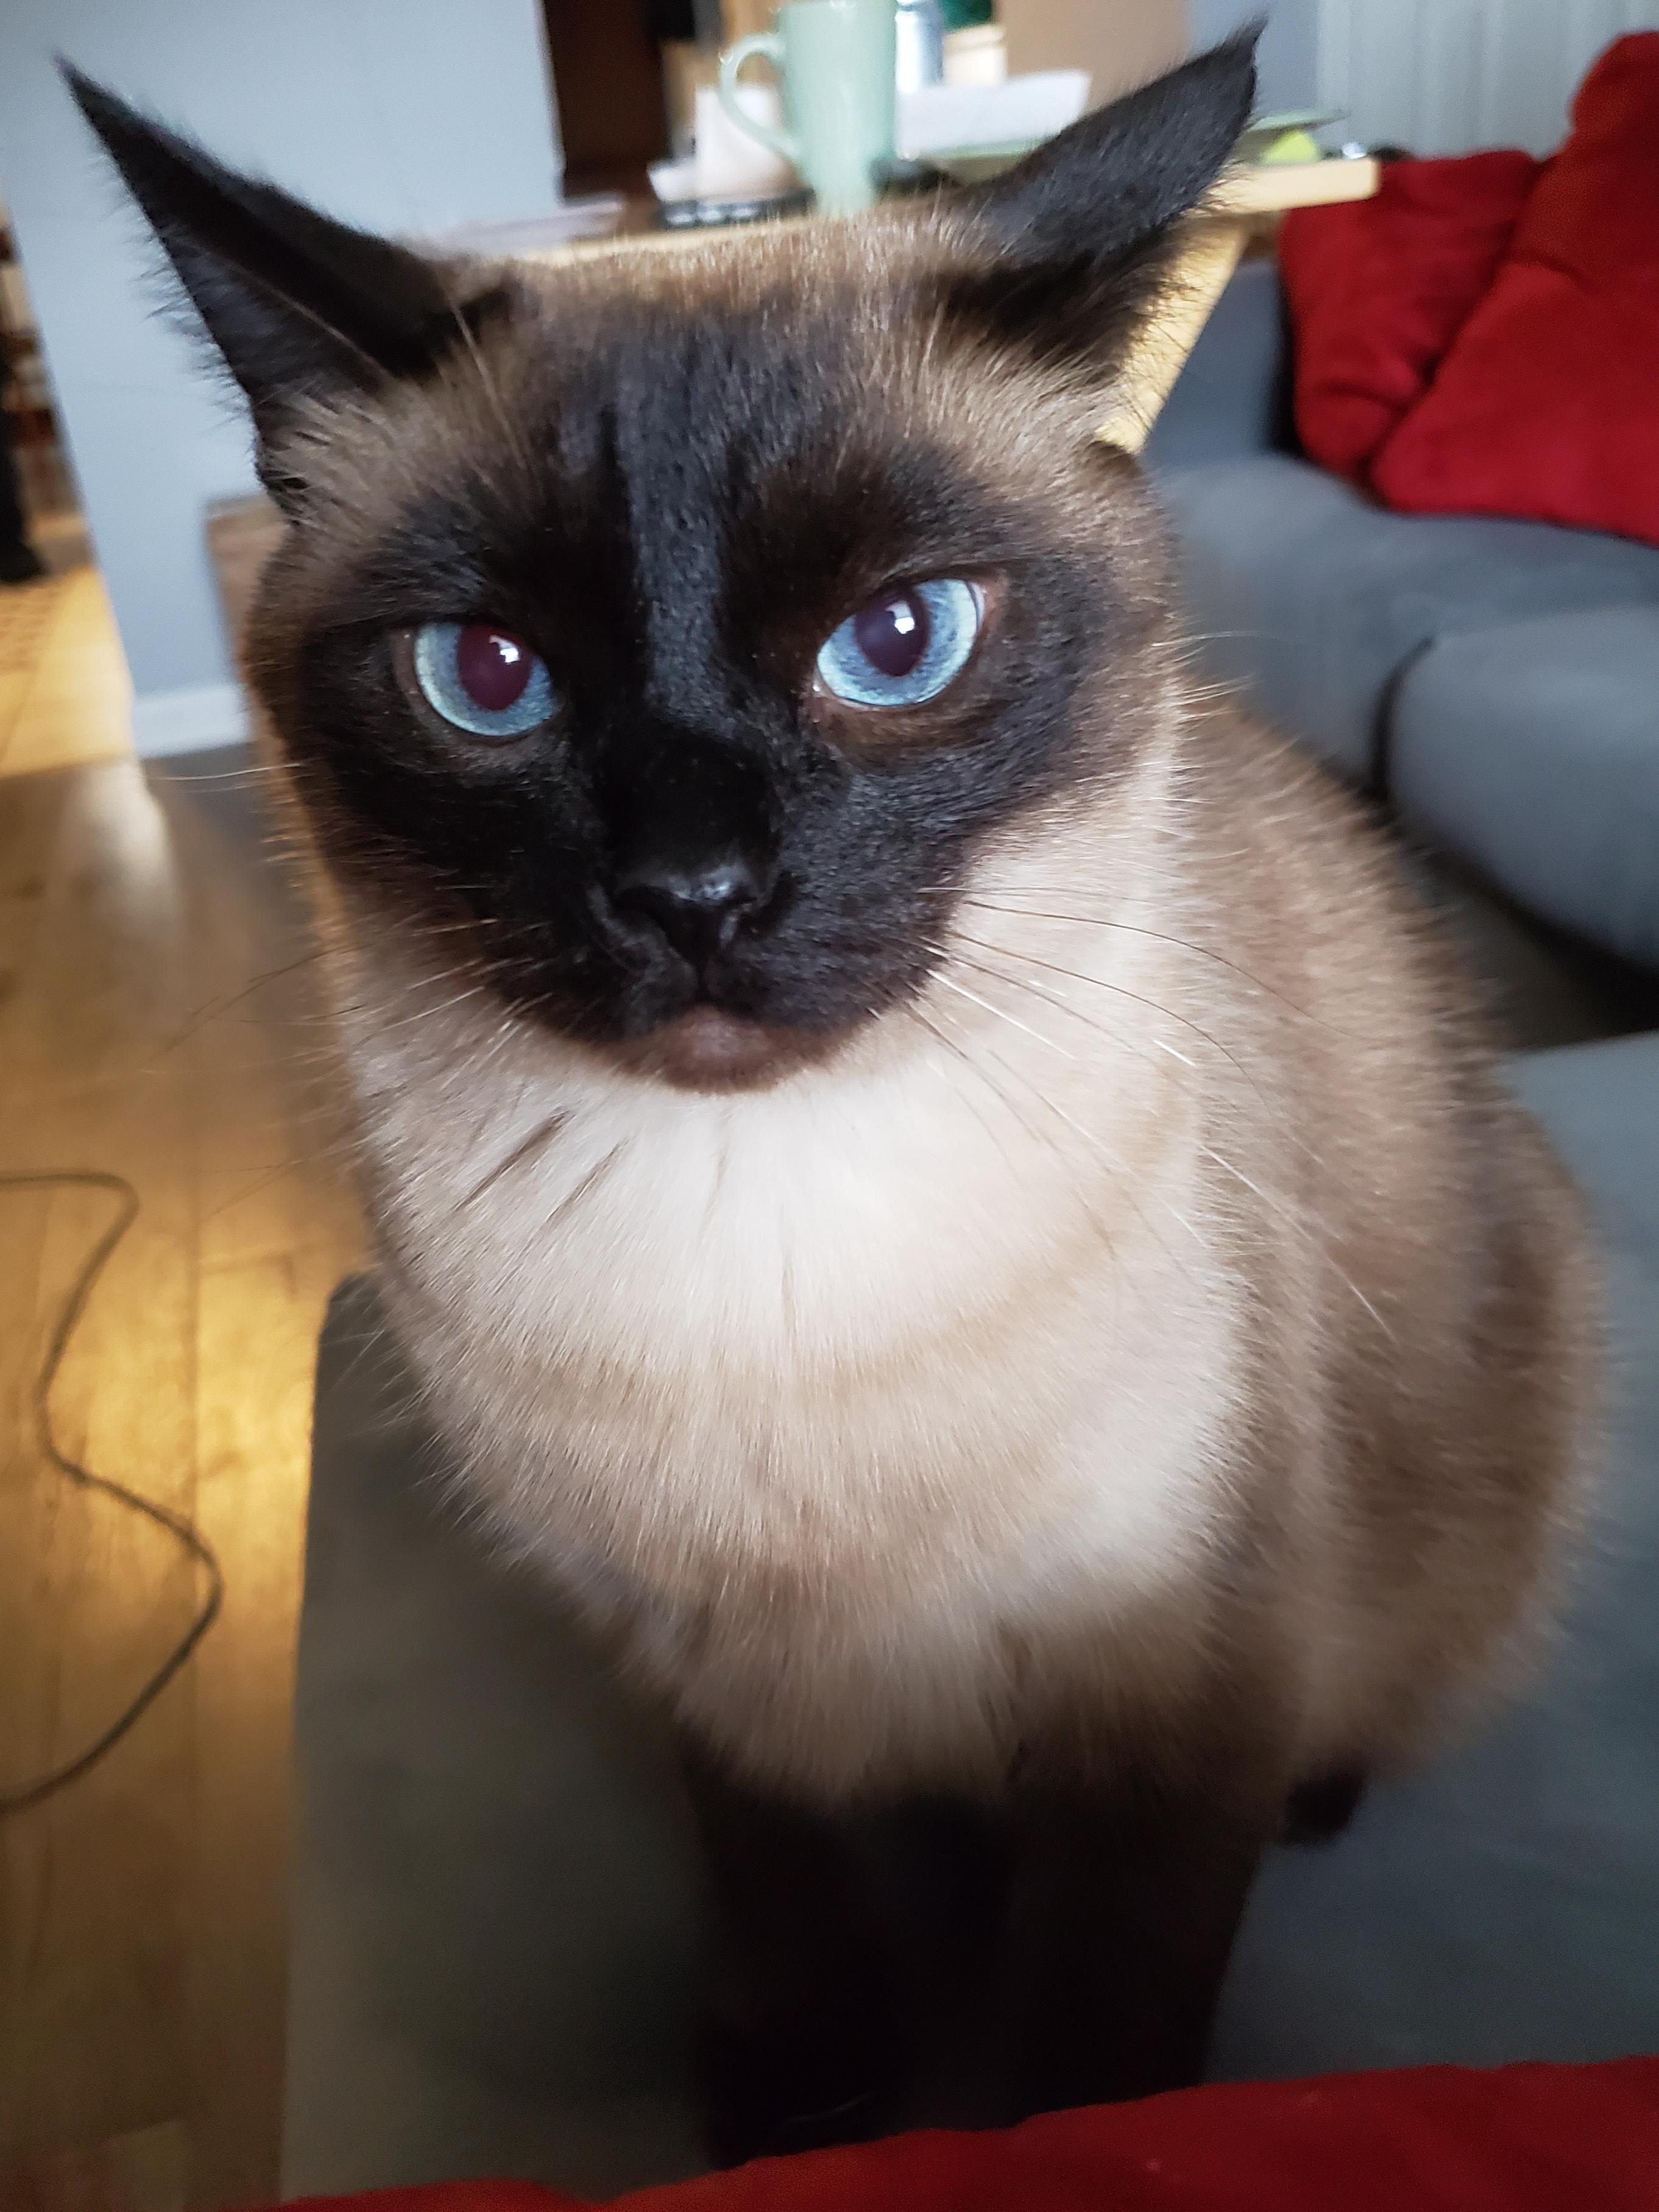 The Noble Siamese Indignant That He Just Got His Claws Trimmed Cat Pet Pets Cats Kitten Kitty Pussycat Cats Kitty Cat S